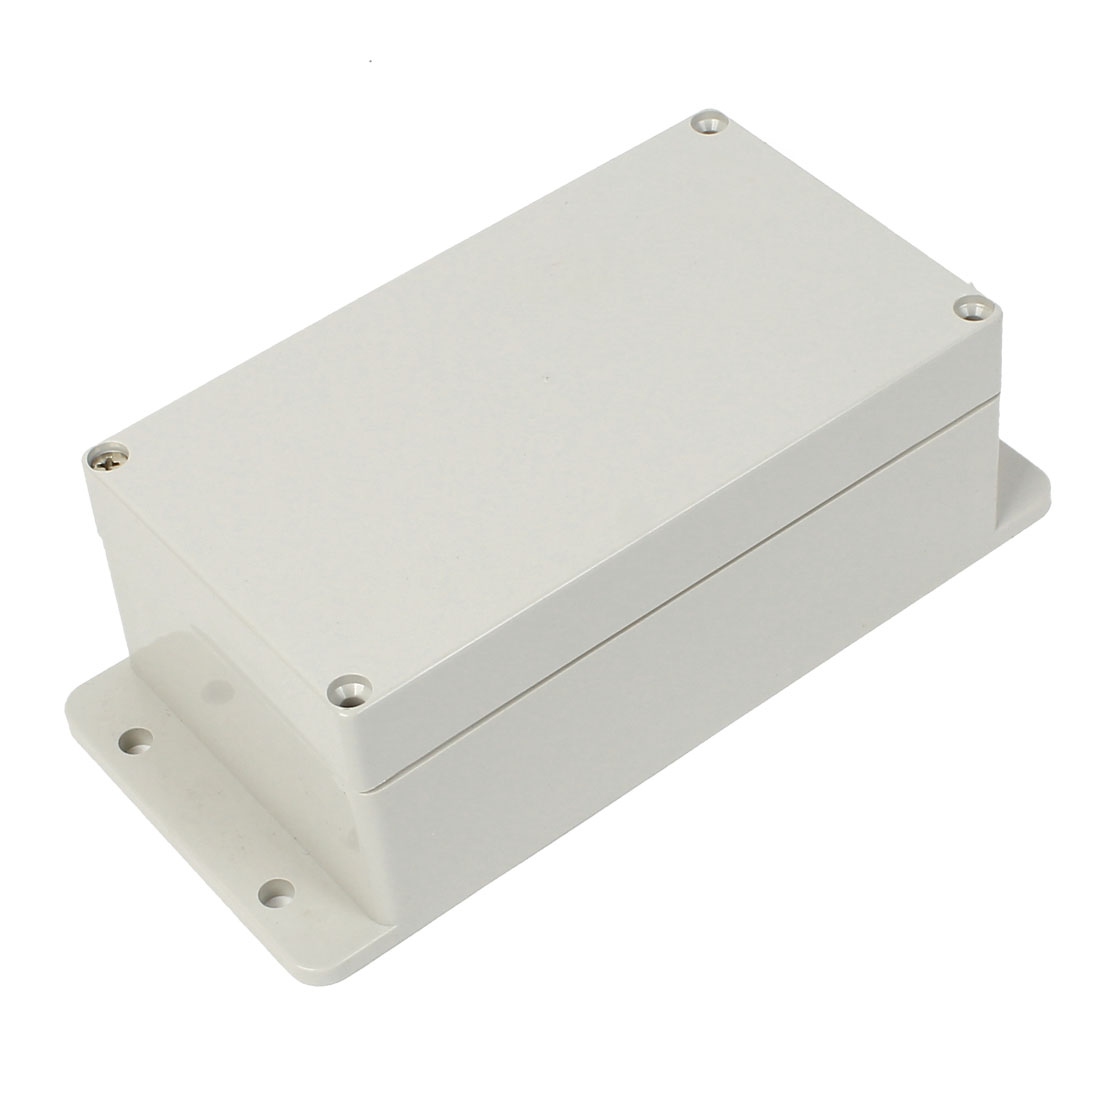 UXCELL Surface Mounted Abs Waterproof Sealed Electric Junction Box 158X90x64mm  цены